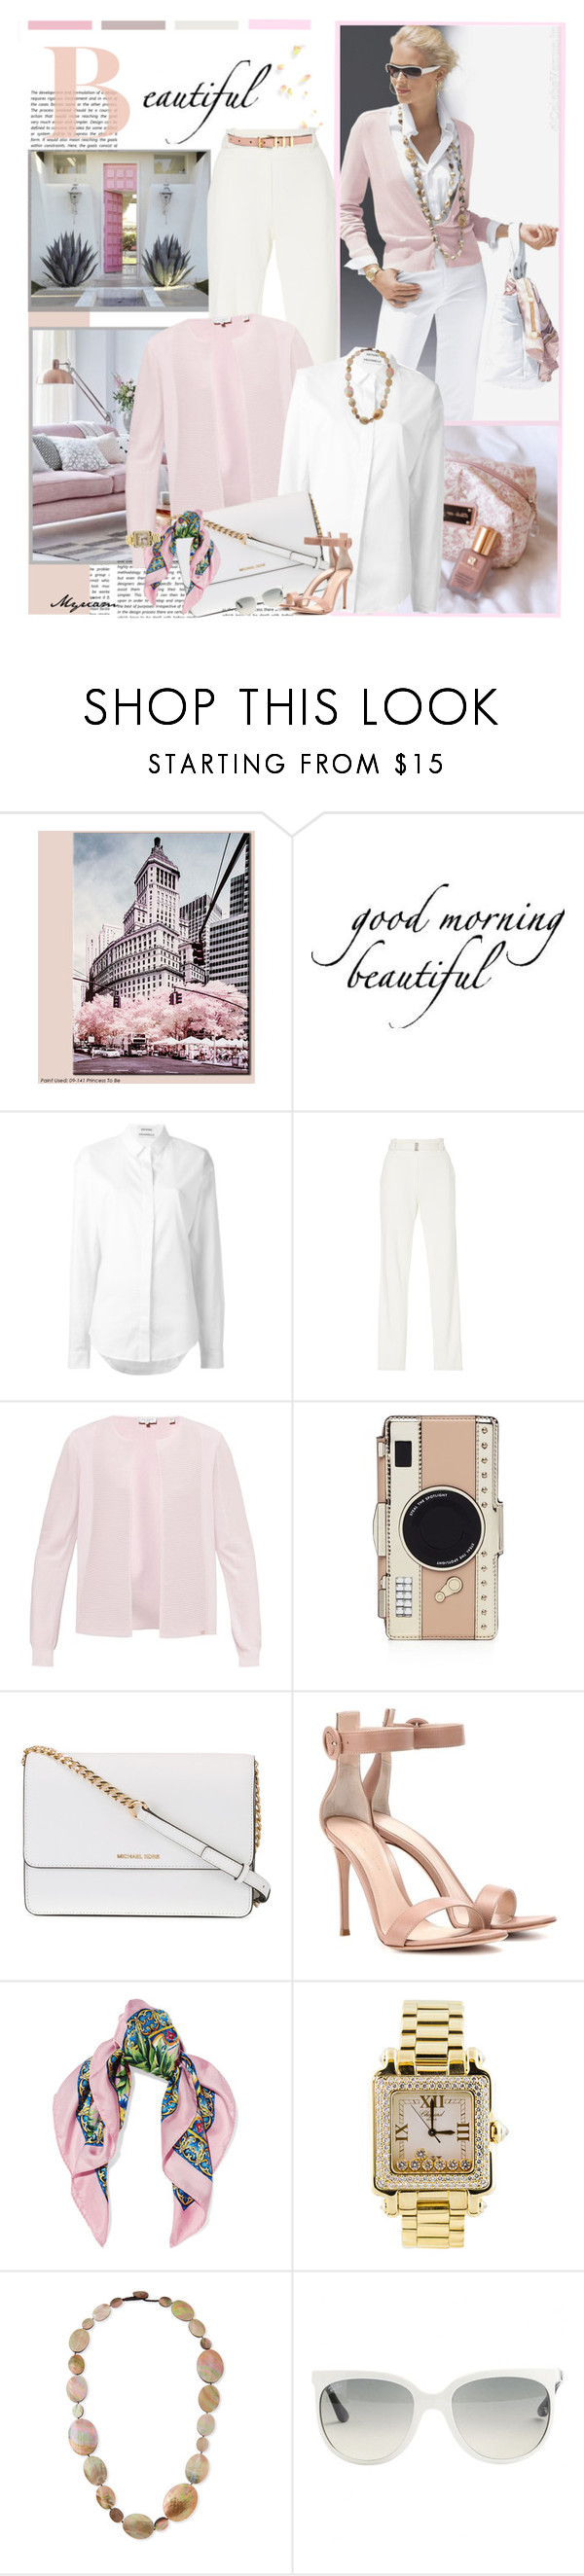 """So beautiful and class"" by lovemeforthelife-myriam ❤ liked on Polyvore featuring WALL, Anthony Vaccarello, Maison Ullens, Ted Baker, Kate Spade, Michael Kors, Gianvito Rossi, Dolce&Gabbana, Chopard and Viktoria Hayman"